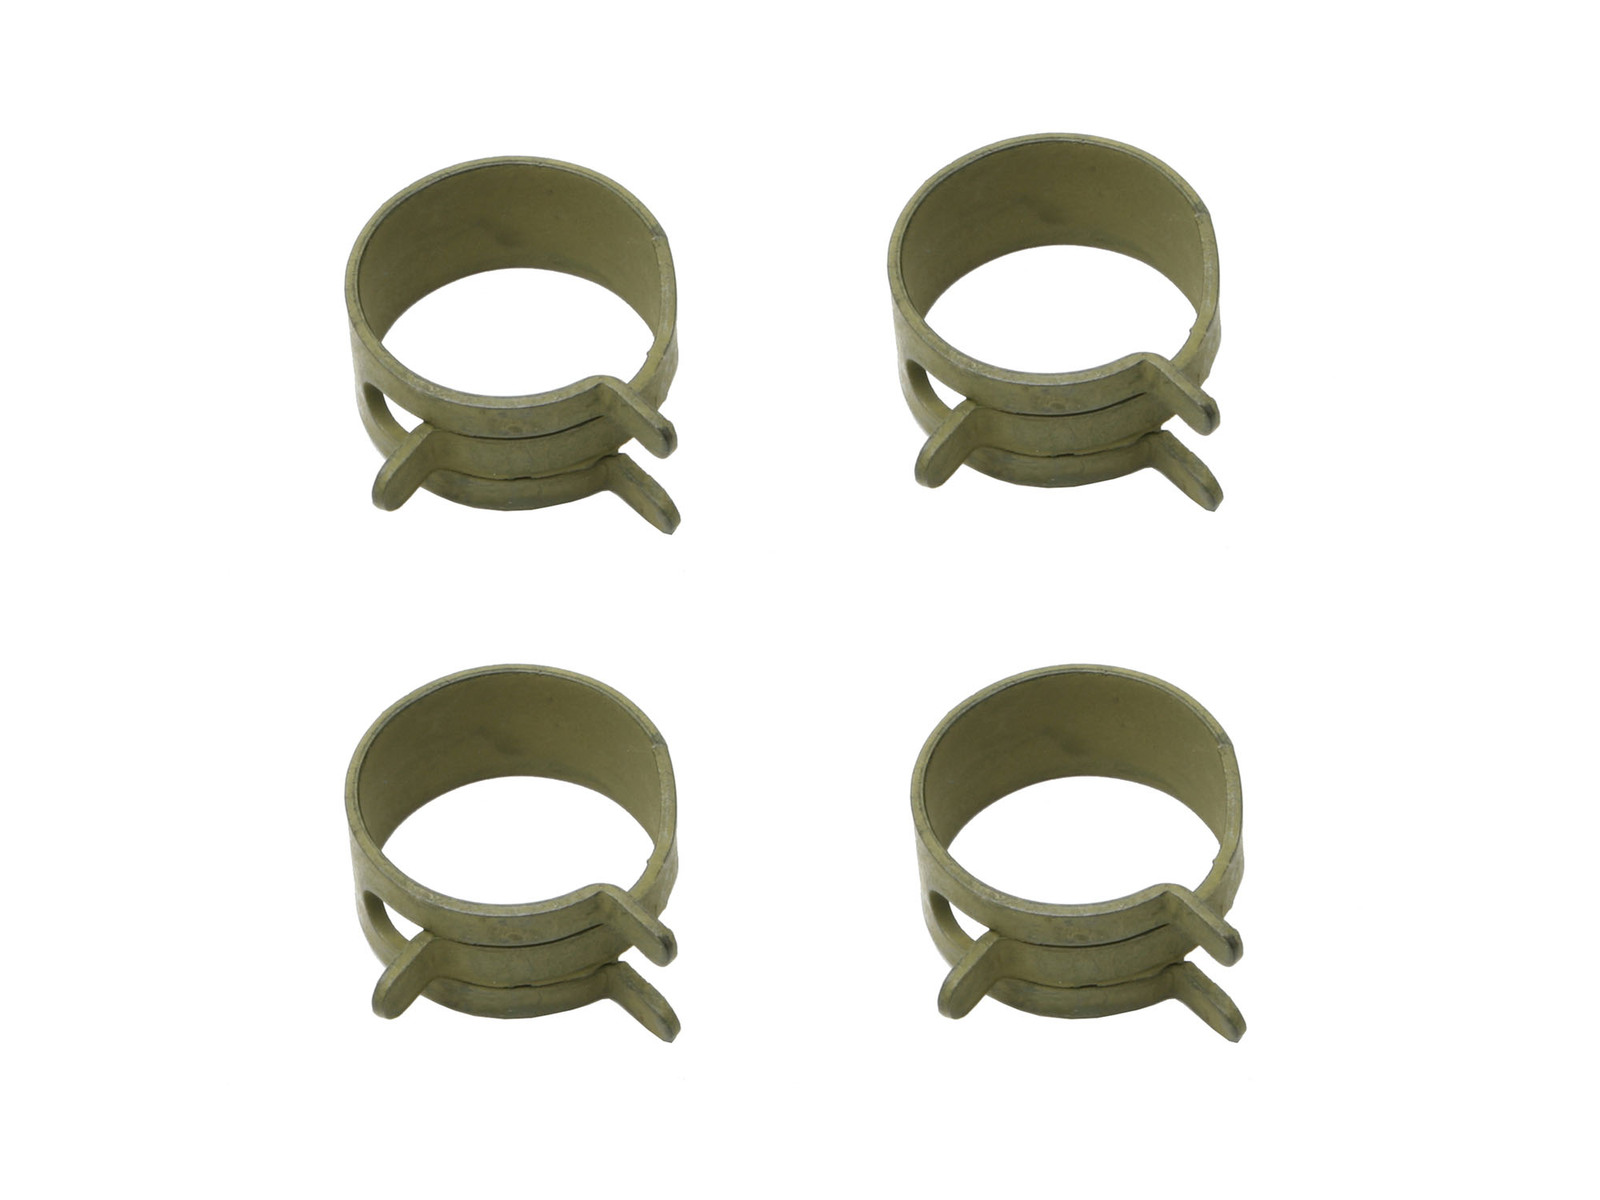 Holden Ford Hose Clamp 5 8 X4 Olive Xk Xy Xc Fx Hk Hg Hq